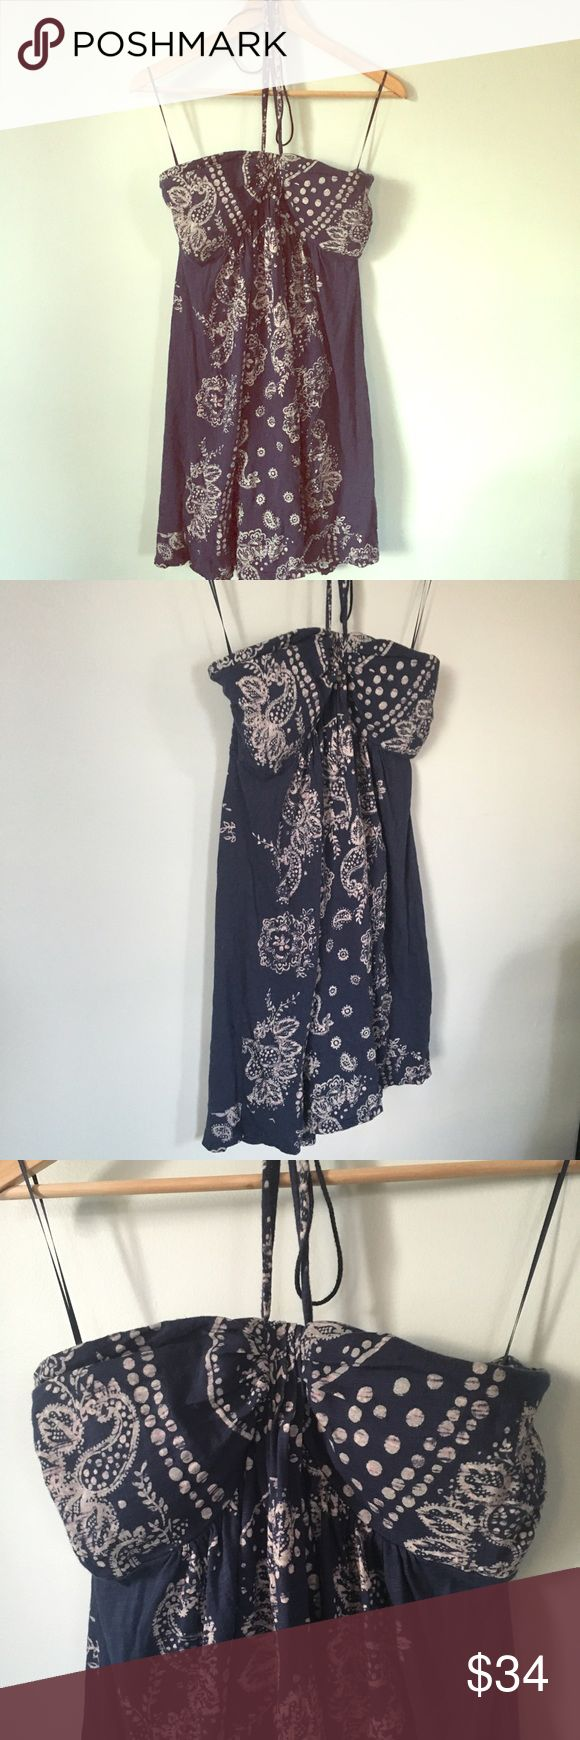 "AE outfitters Bandana dress Navy White Size XL AE outfitters Bandana dress Navy blue White, neck straps Size XL . Attached bra. Great for festival and the beach. 100% cotton. Length chest to hem 28"", chest laying flat 15.5"", stretch back up to 19"". American Eagle Outfitters Dresses Mini"